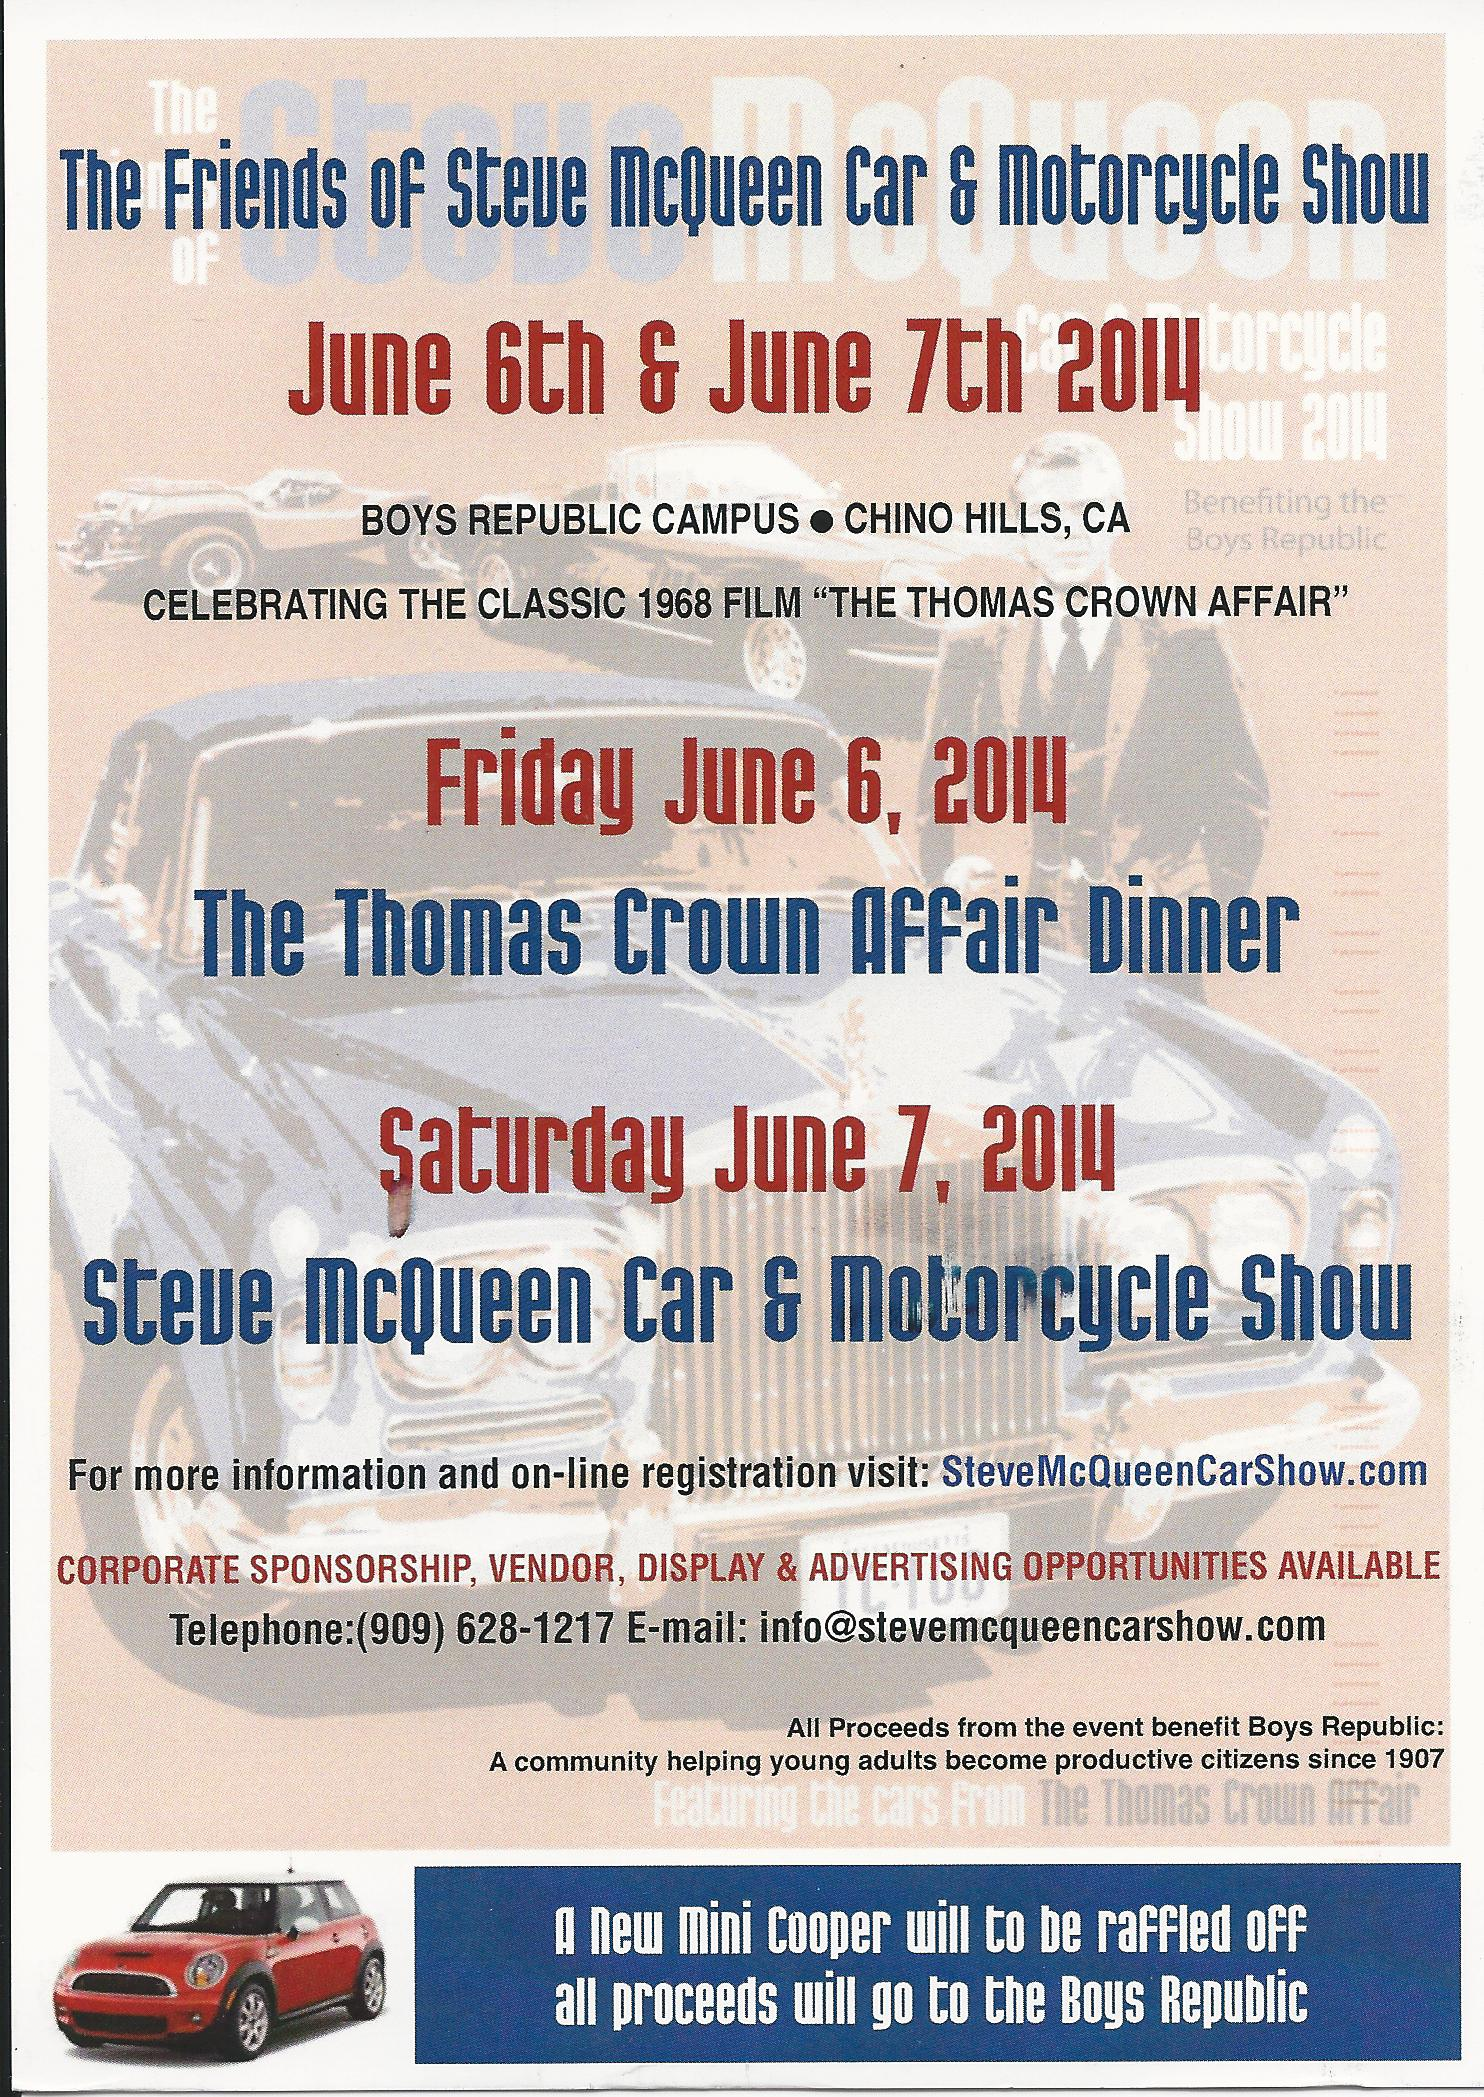 Calendar Alert: The Friends of Steve McQueen Car Show weekend is June 6/7, 2014